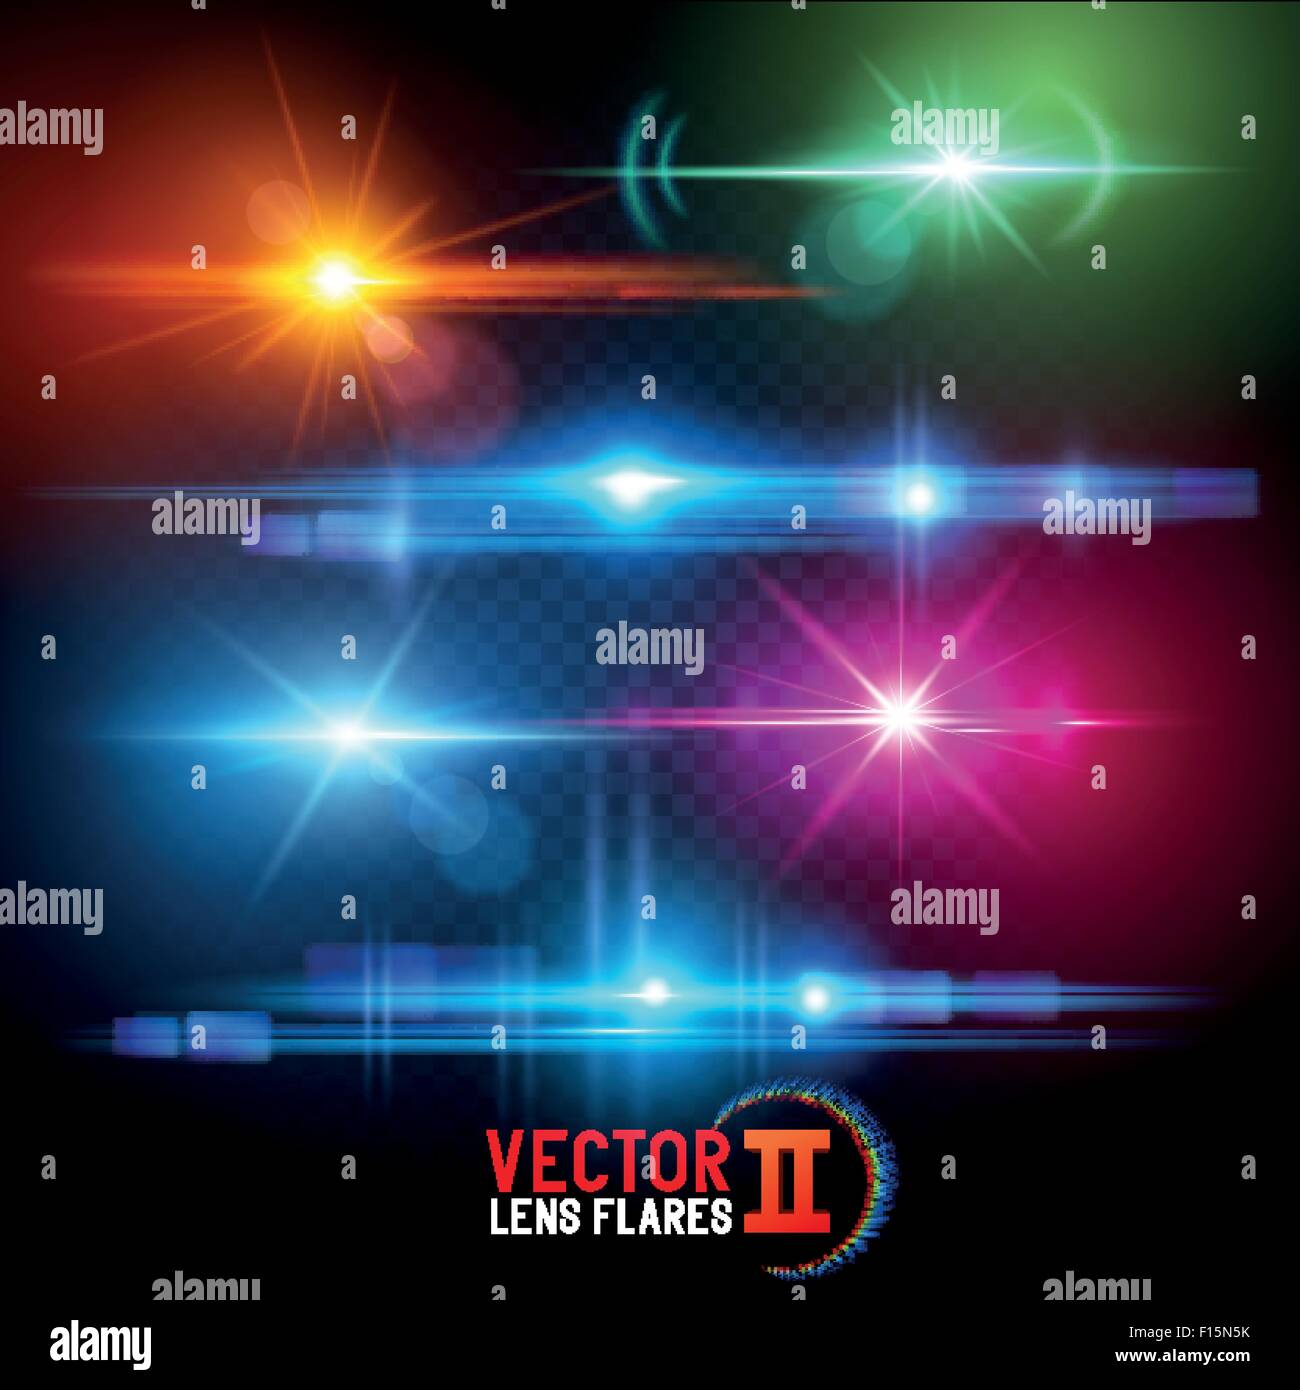 Vector Lens Flare Effects. Lens flares using transparencies. layered vector illustration. - Stock Image